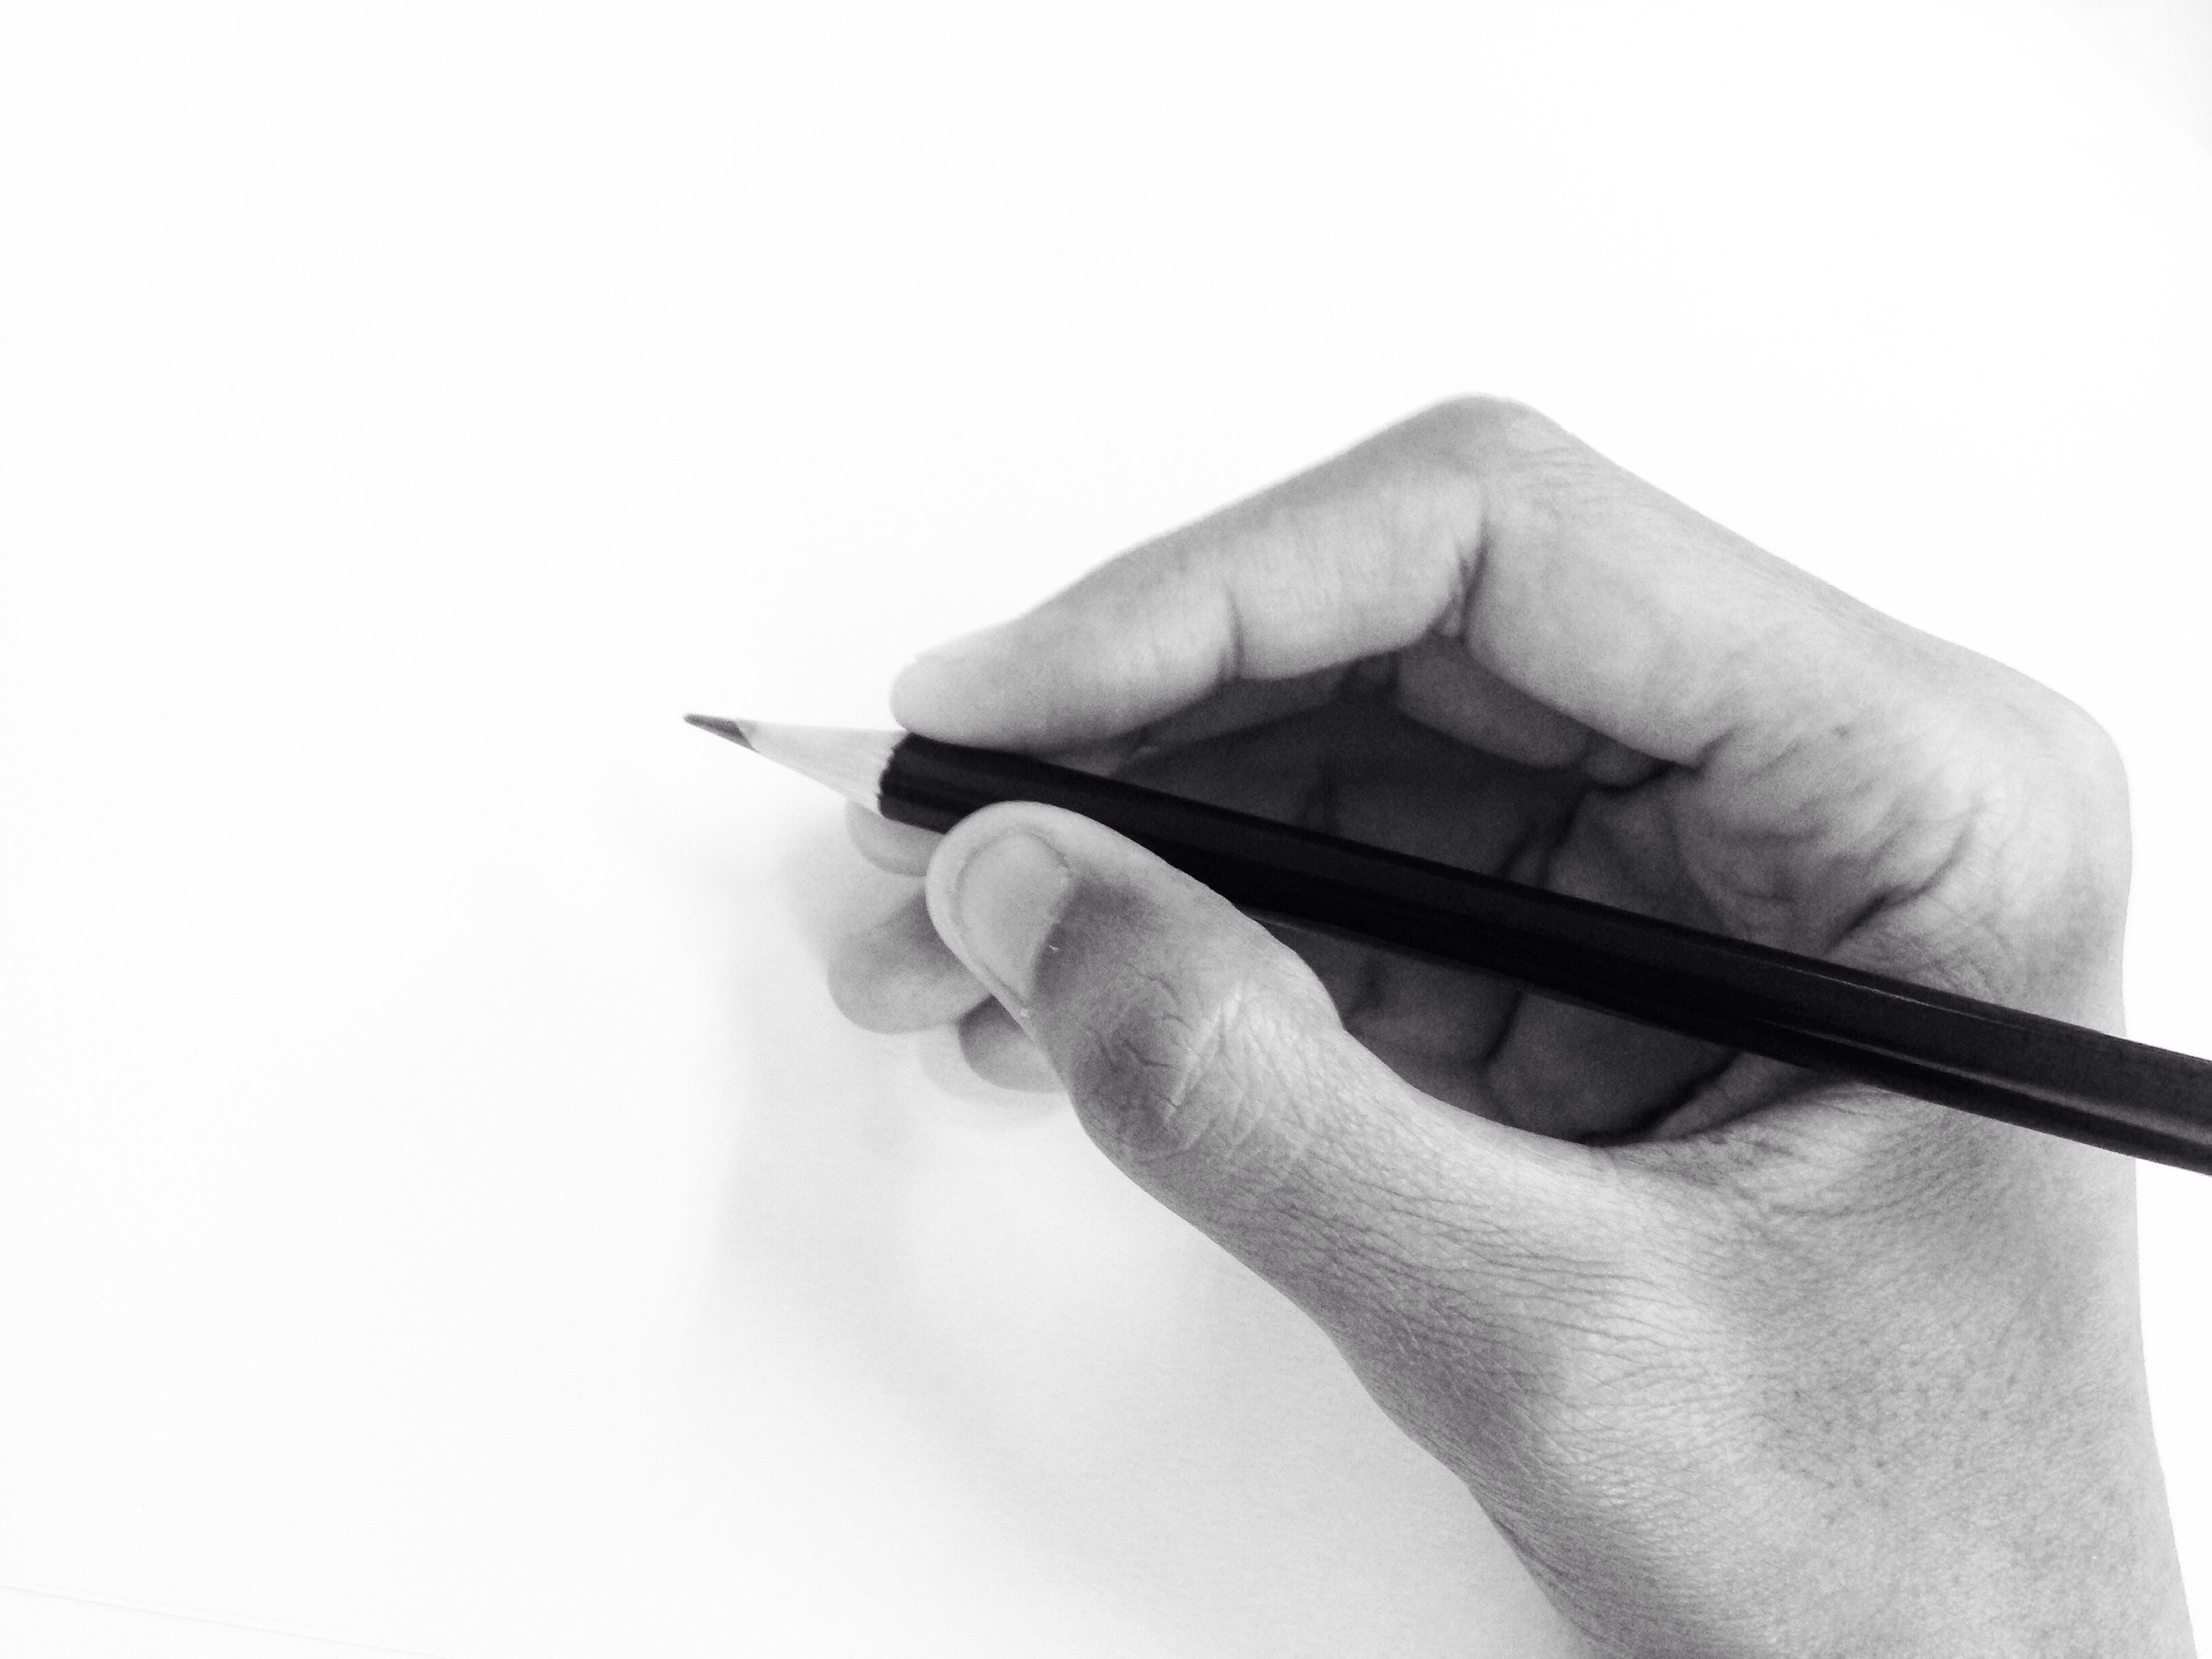 The right way to hold a pencil for drawing